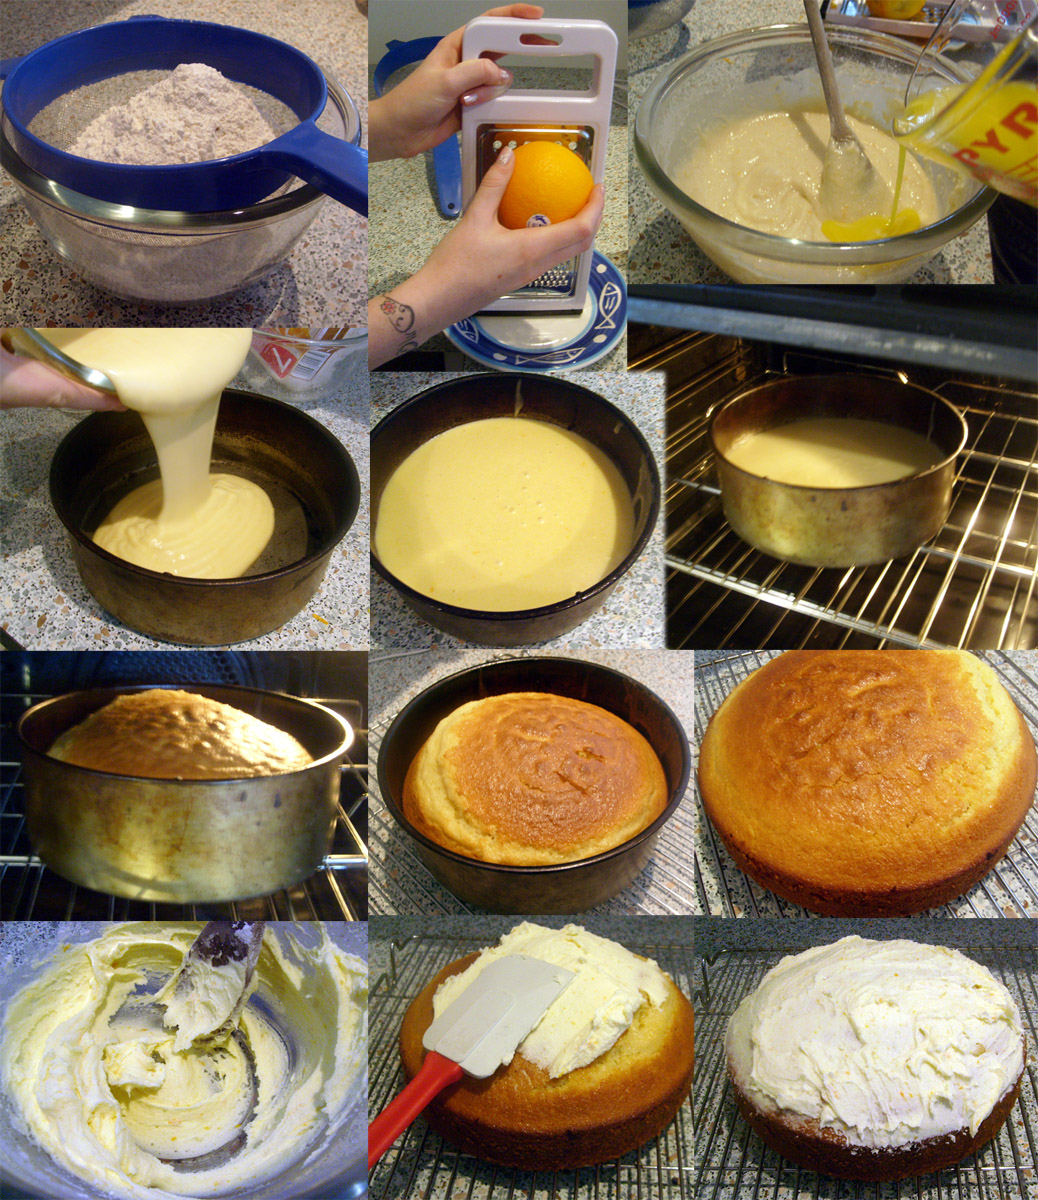 Process Analysis Essay On Baking A Cake